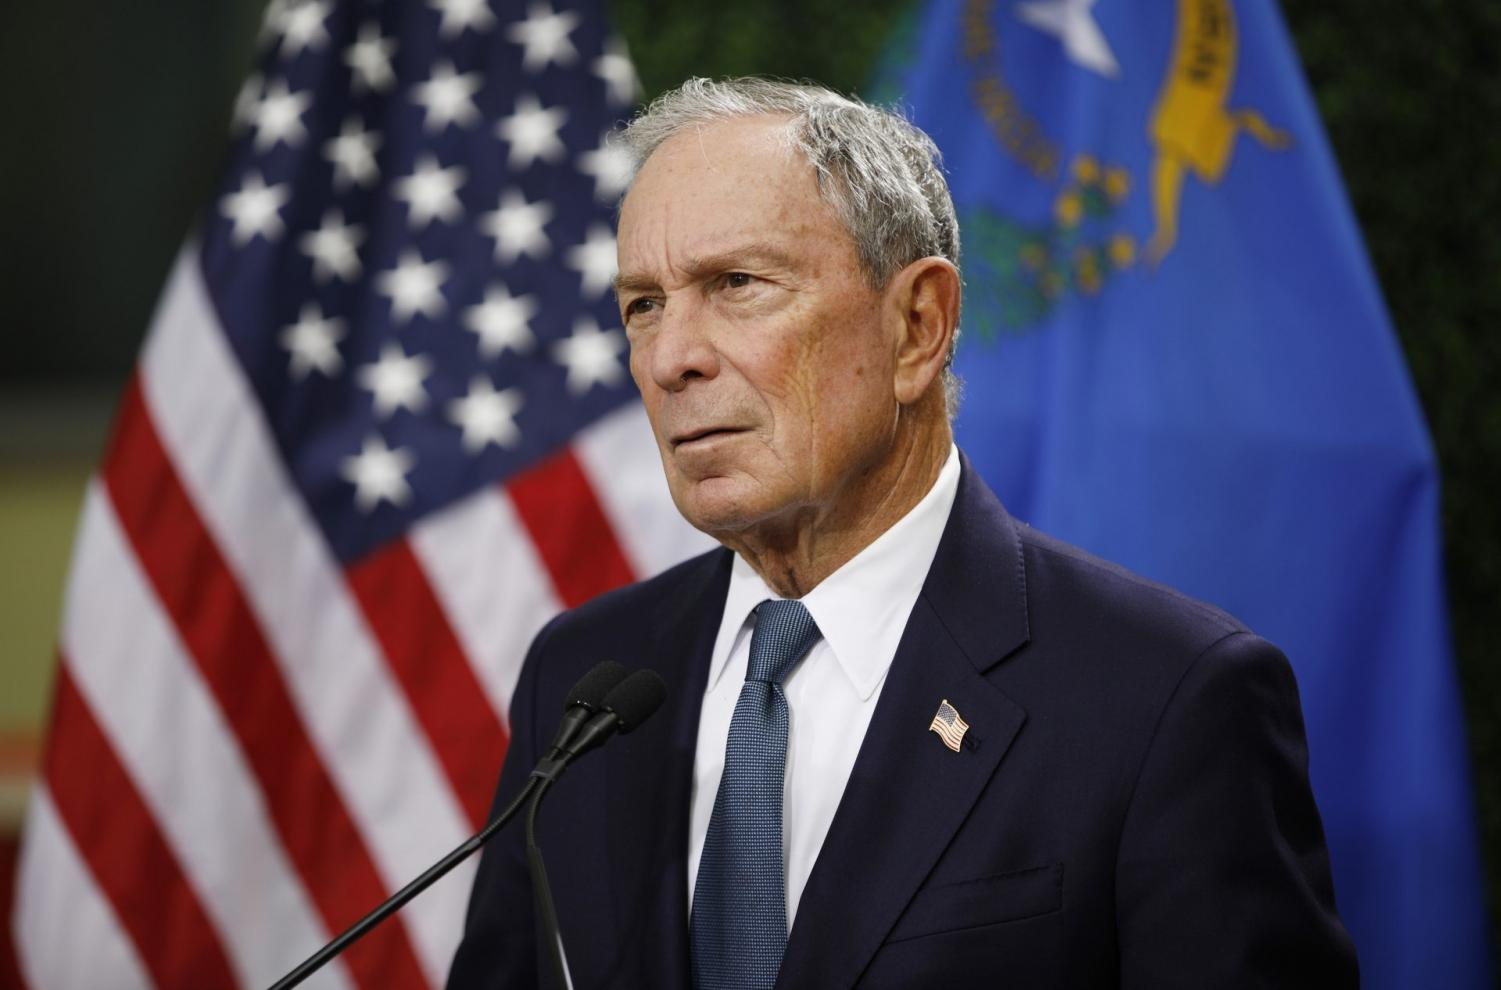 In this Feb. 26, 2019, file photo, former New York City Mayor Michael Bloomberg speaks at a news conference at a gun control advocacy event in Las Vegas. Tennessee's top election officials say Bloomberg has requested a petition that would require securing 2,500 signatures from registered voters in less than a month if he wants to qualify for the state's Democratic presidential primary ballot. The secretary of state's office confirmed Wednesday, Nov. 13, that Bloomberg requested the ballot petition earlier this week.